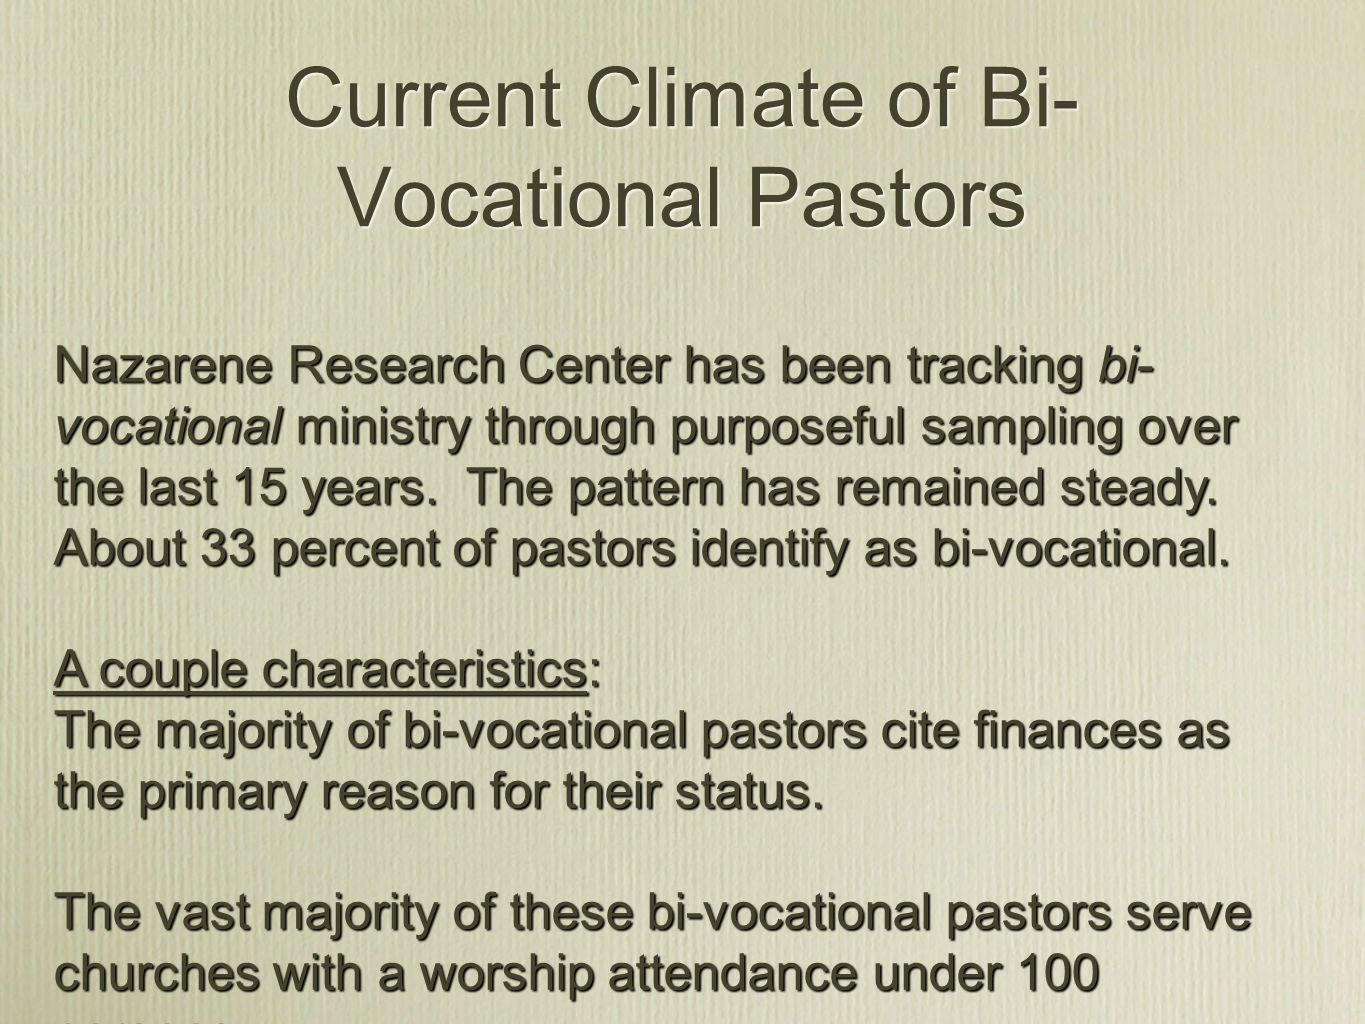 Current Climate of Bi- Vocational Pastors Nazarene Research Center has been tracking bi- vocational ministry through purposeful sampling over the last 15 years.